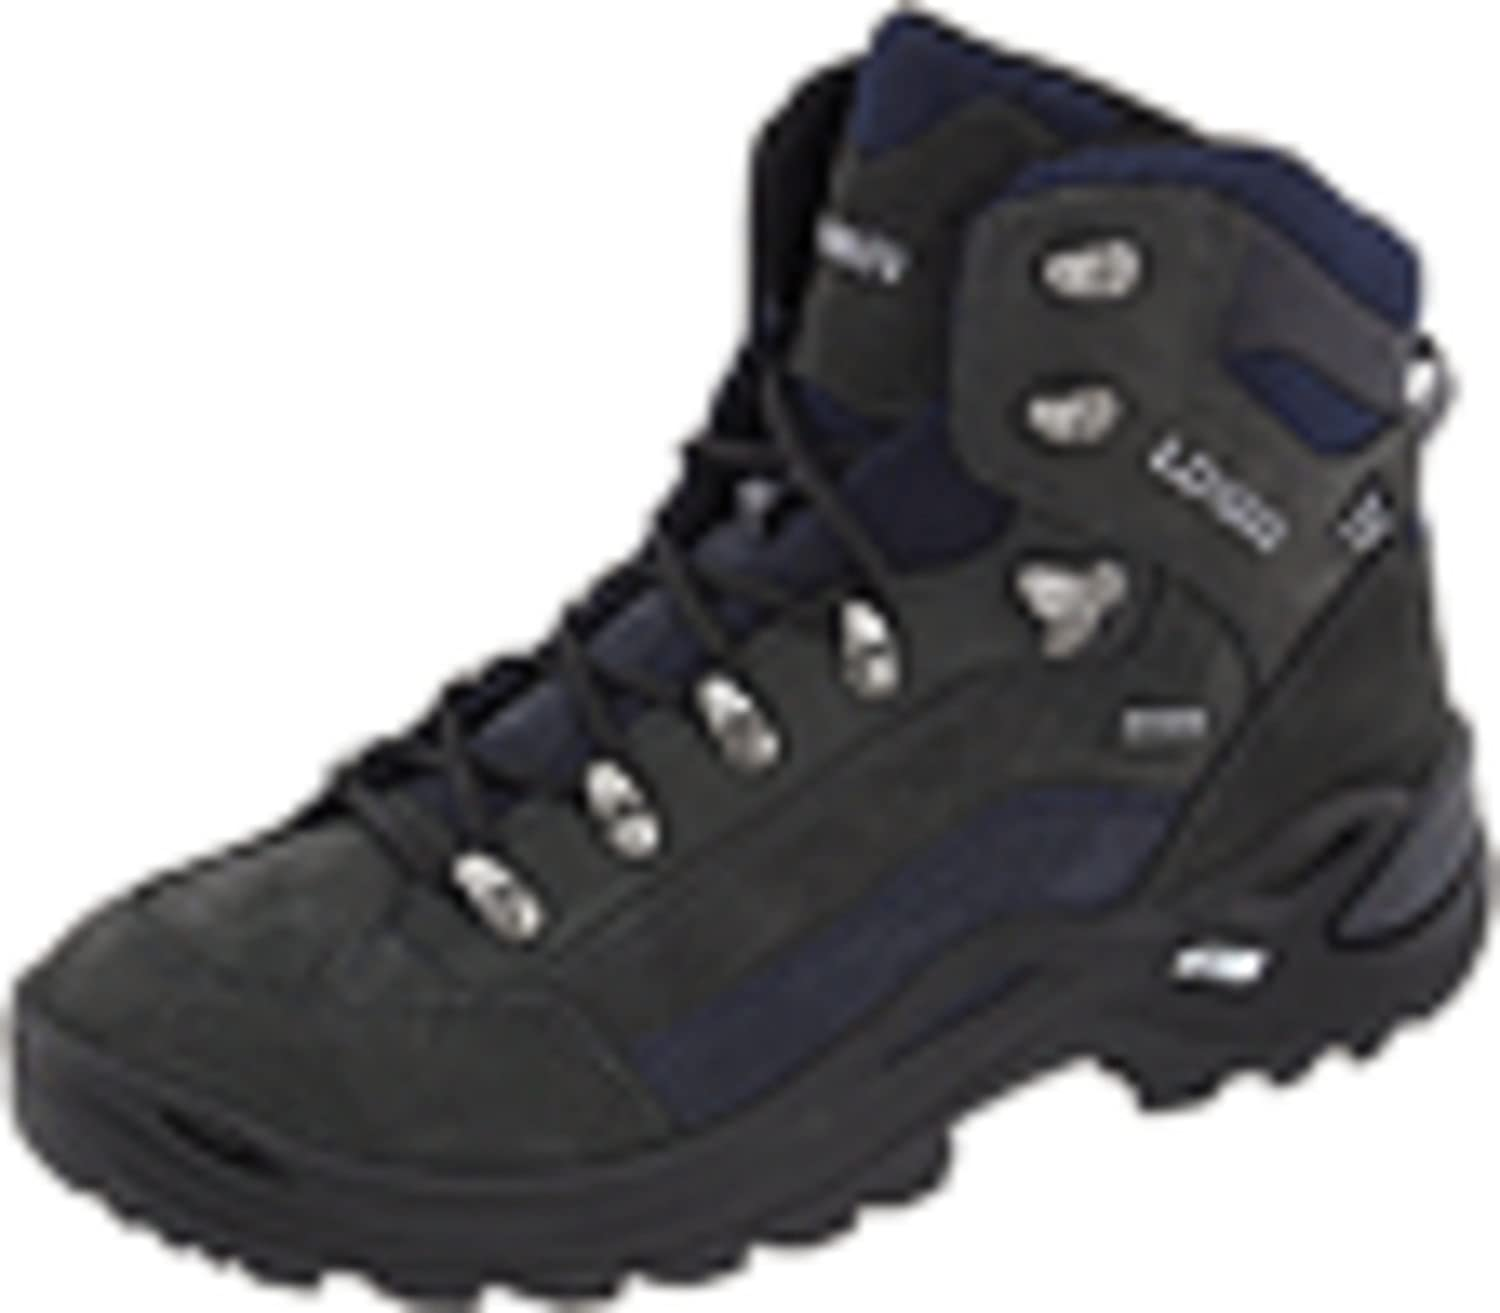 Lowa Women's Renegade GTX Mid Hiking Boot B003GB5RZS 7.5 N US|Dark Grey/Navy